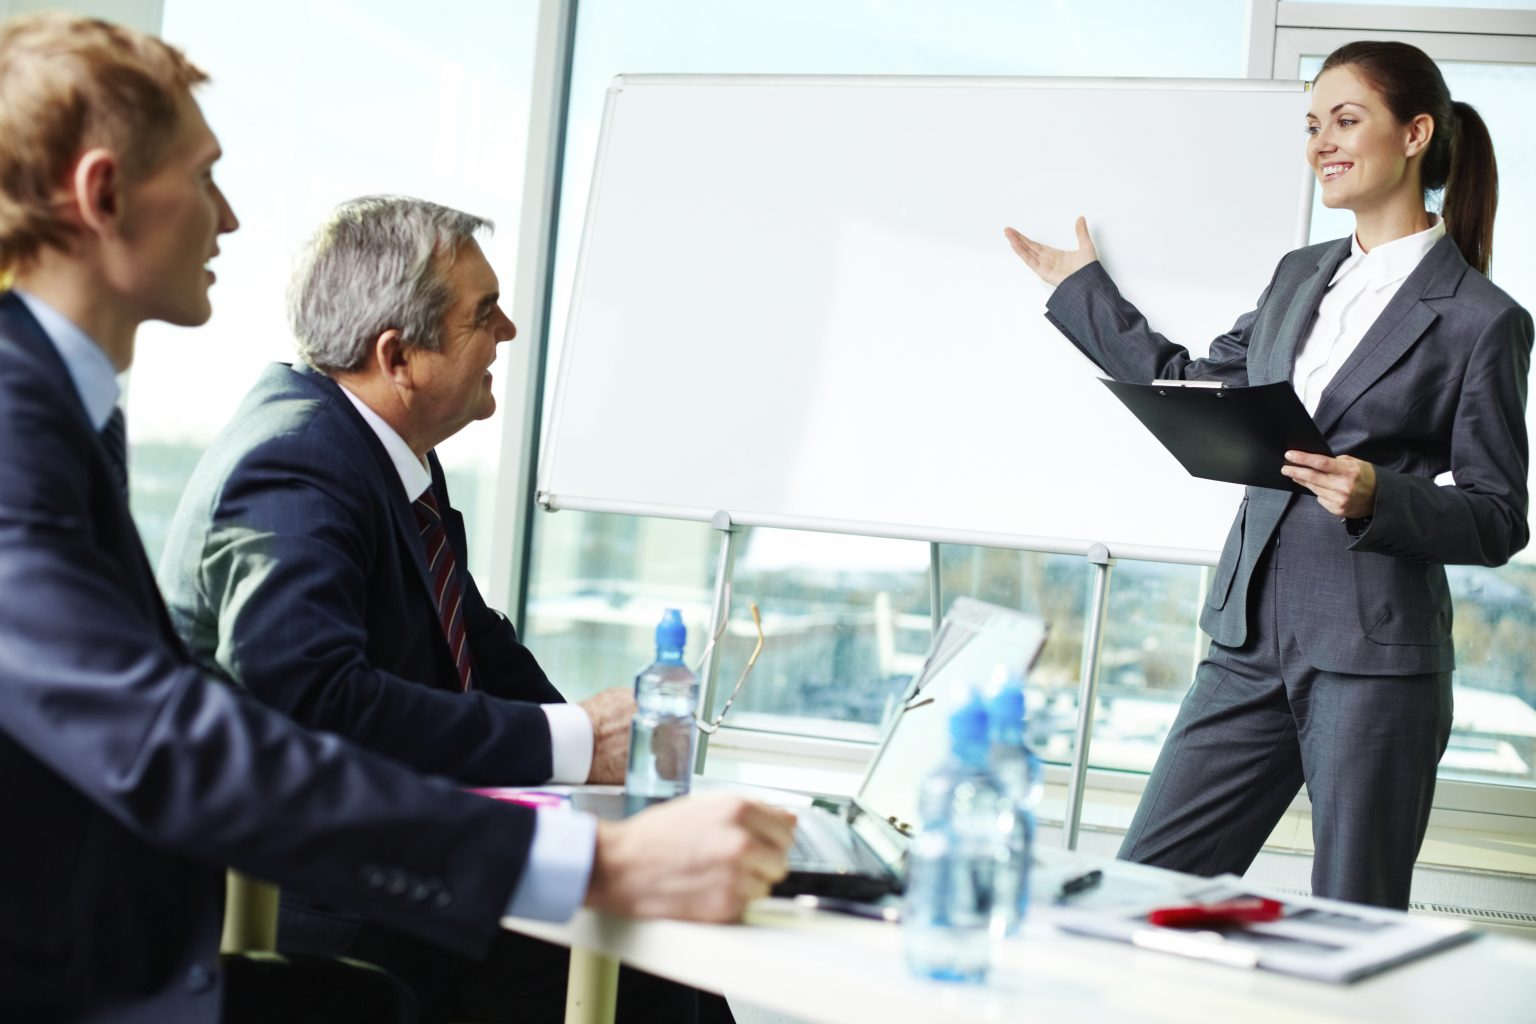 3 Top Tips for Creating a Winning Business Presentation